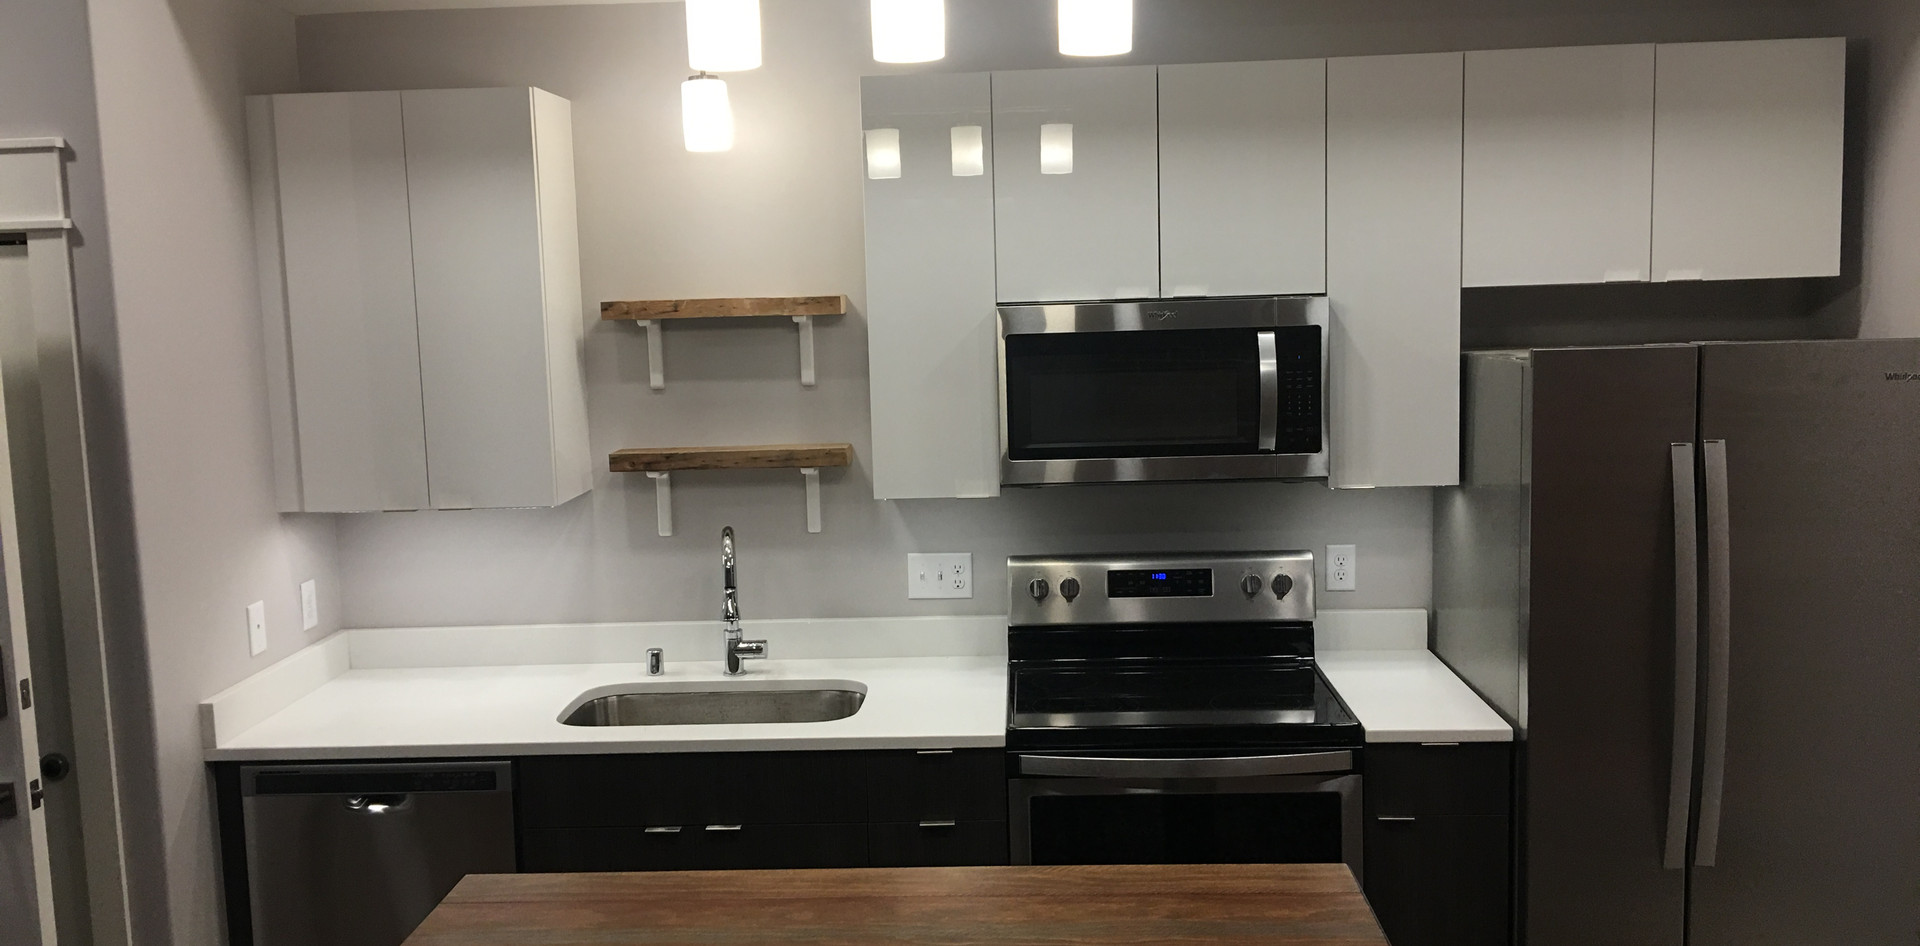 Redstone Lofts 202 Kitchen.JPG